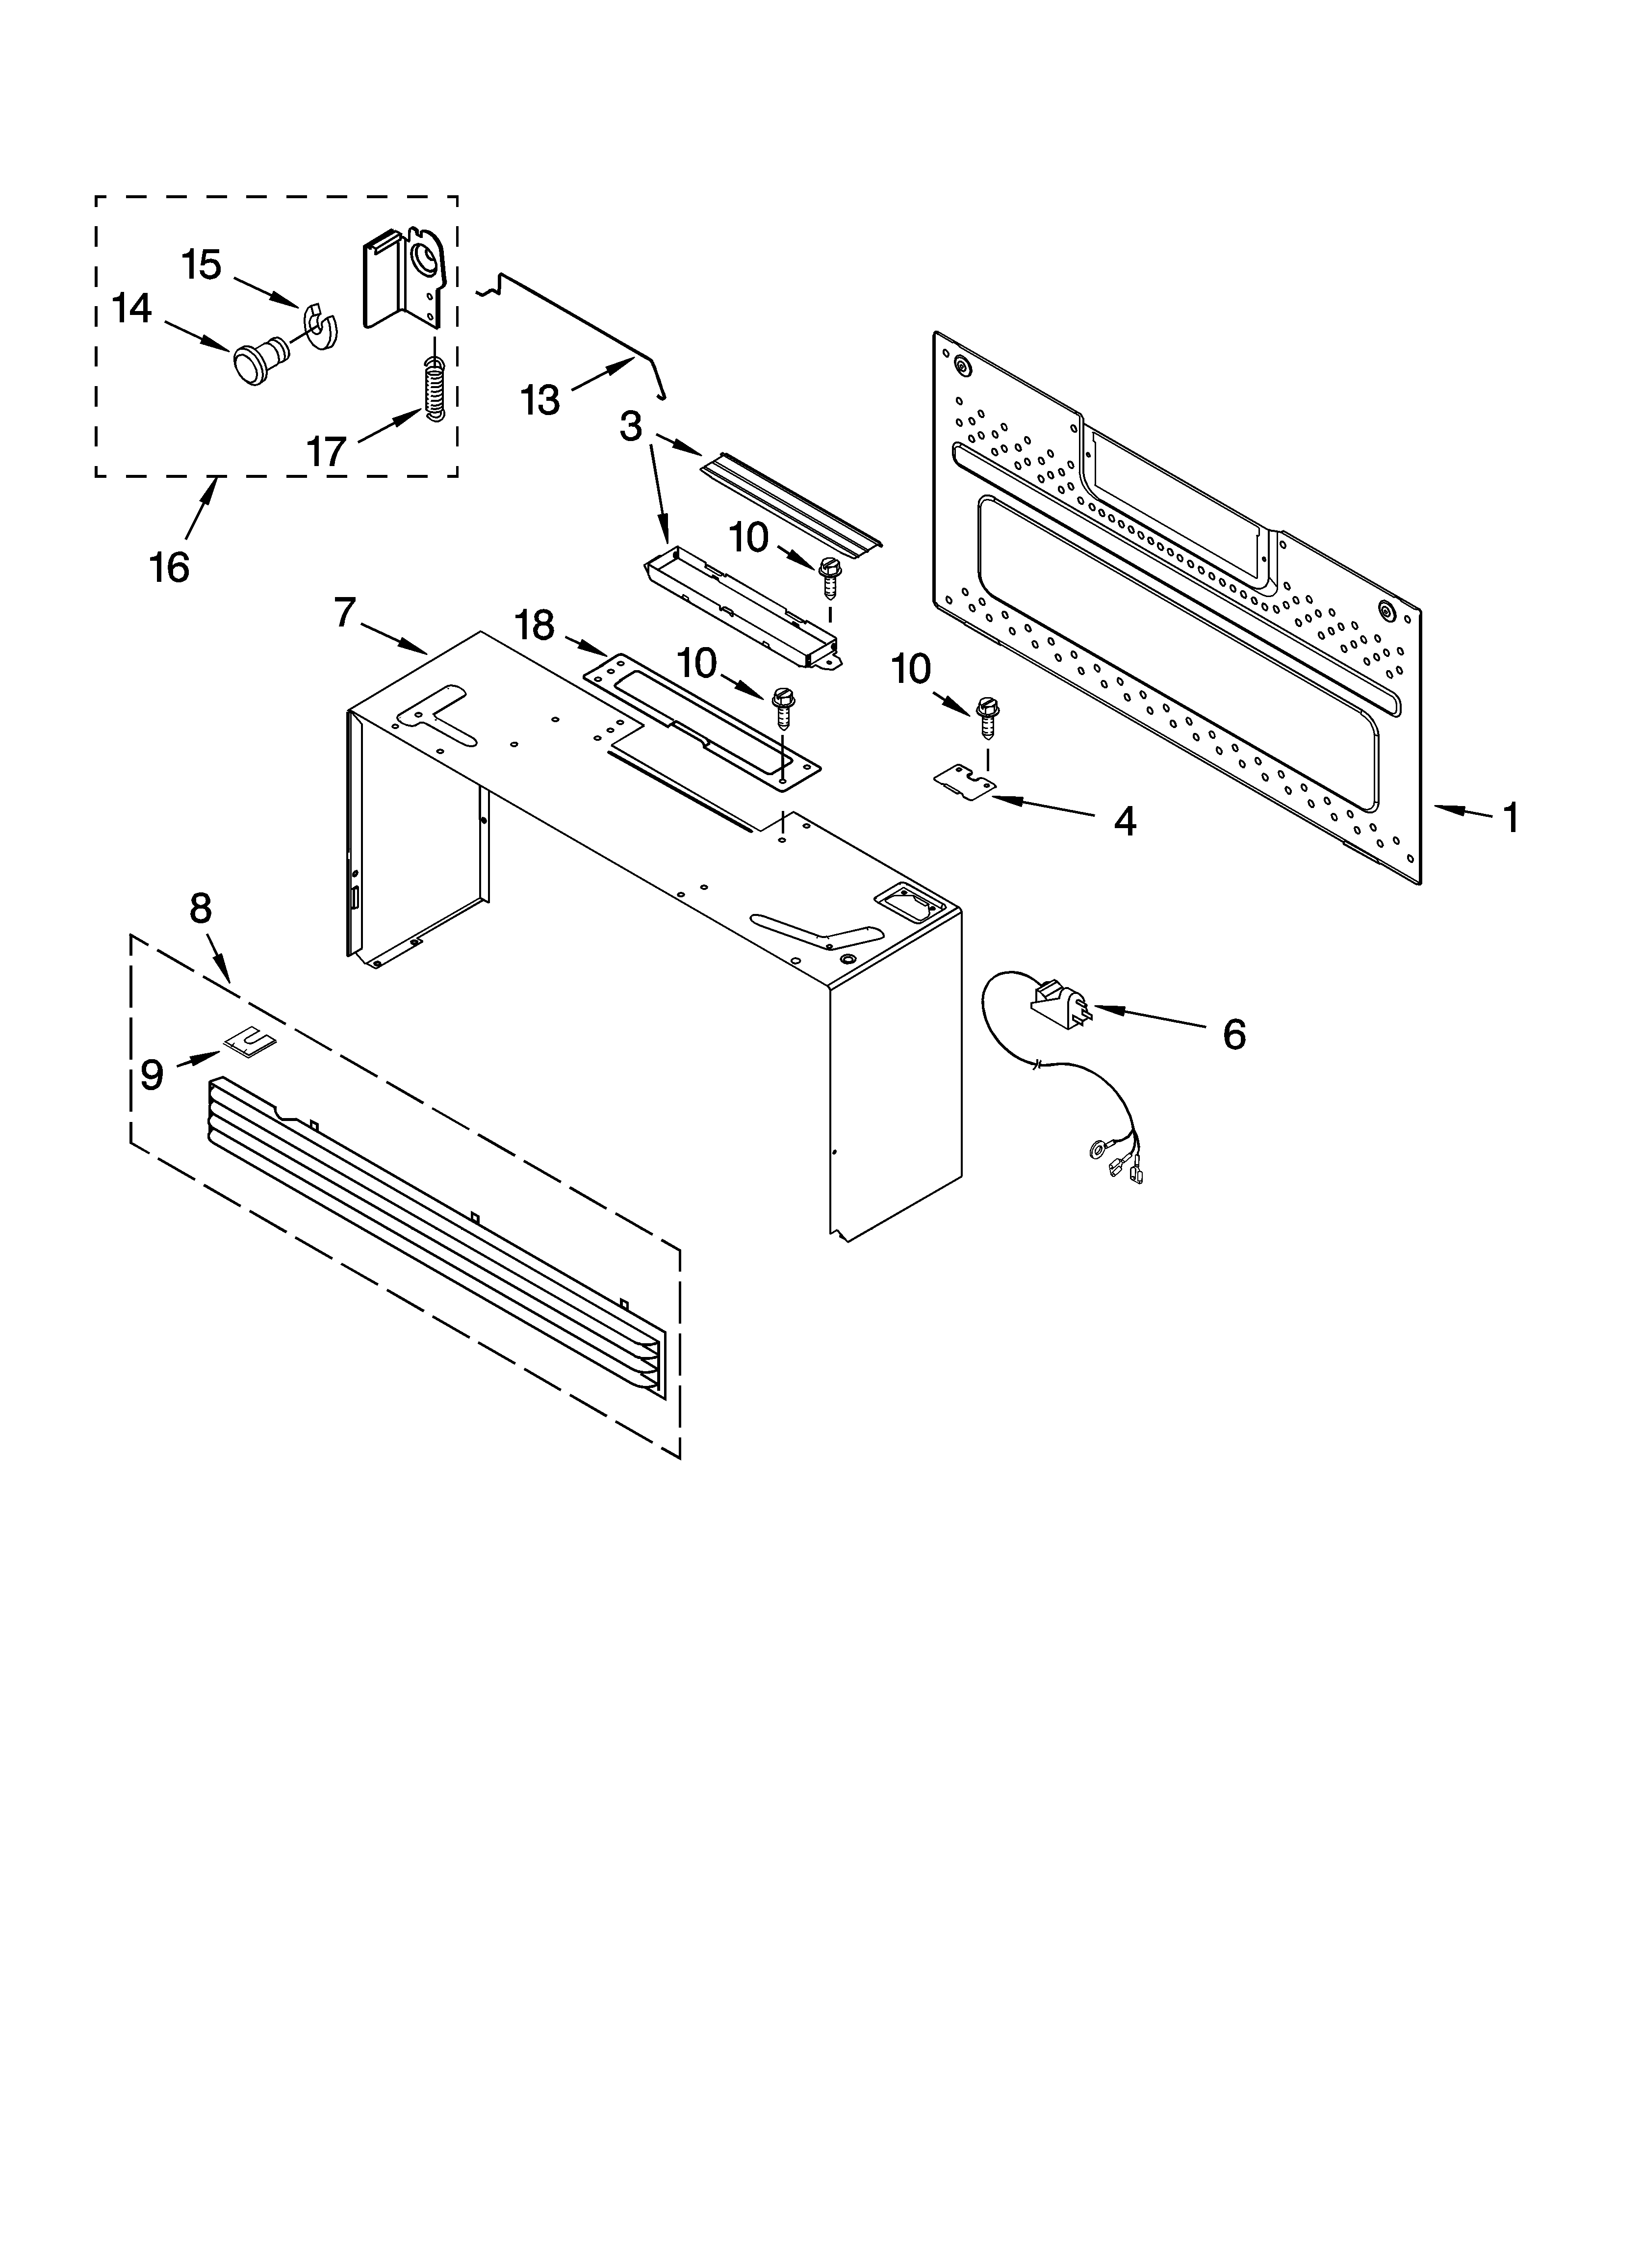 Whirlpool GH4155XPQ0 cabinet and installation parts diagram